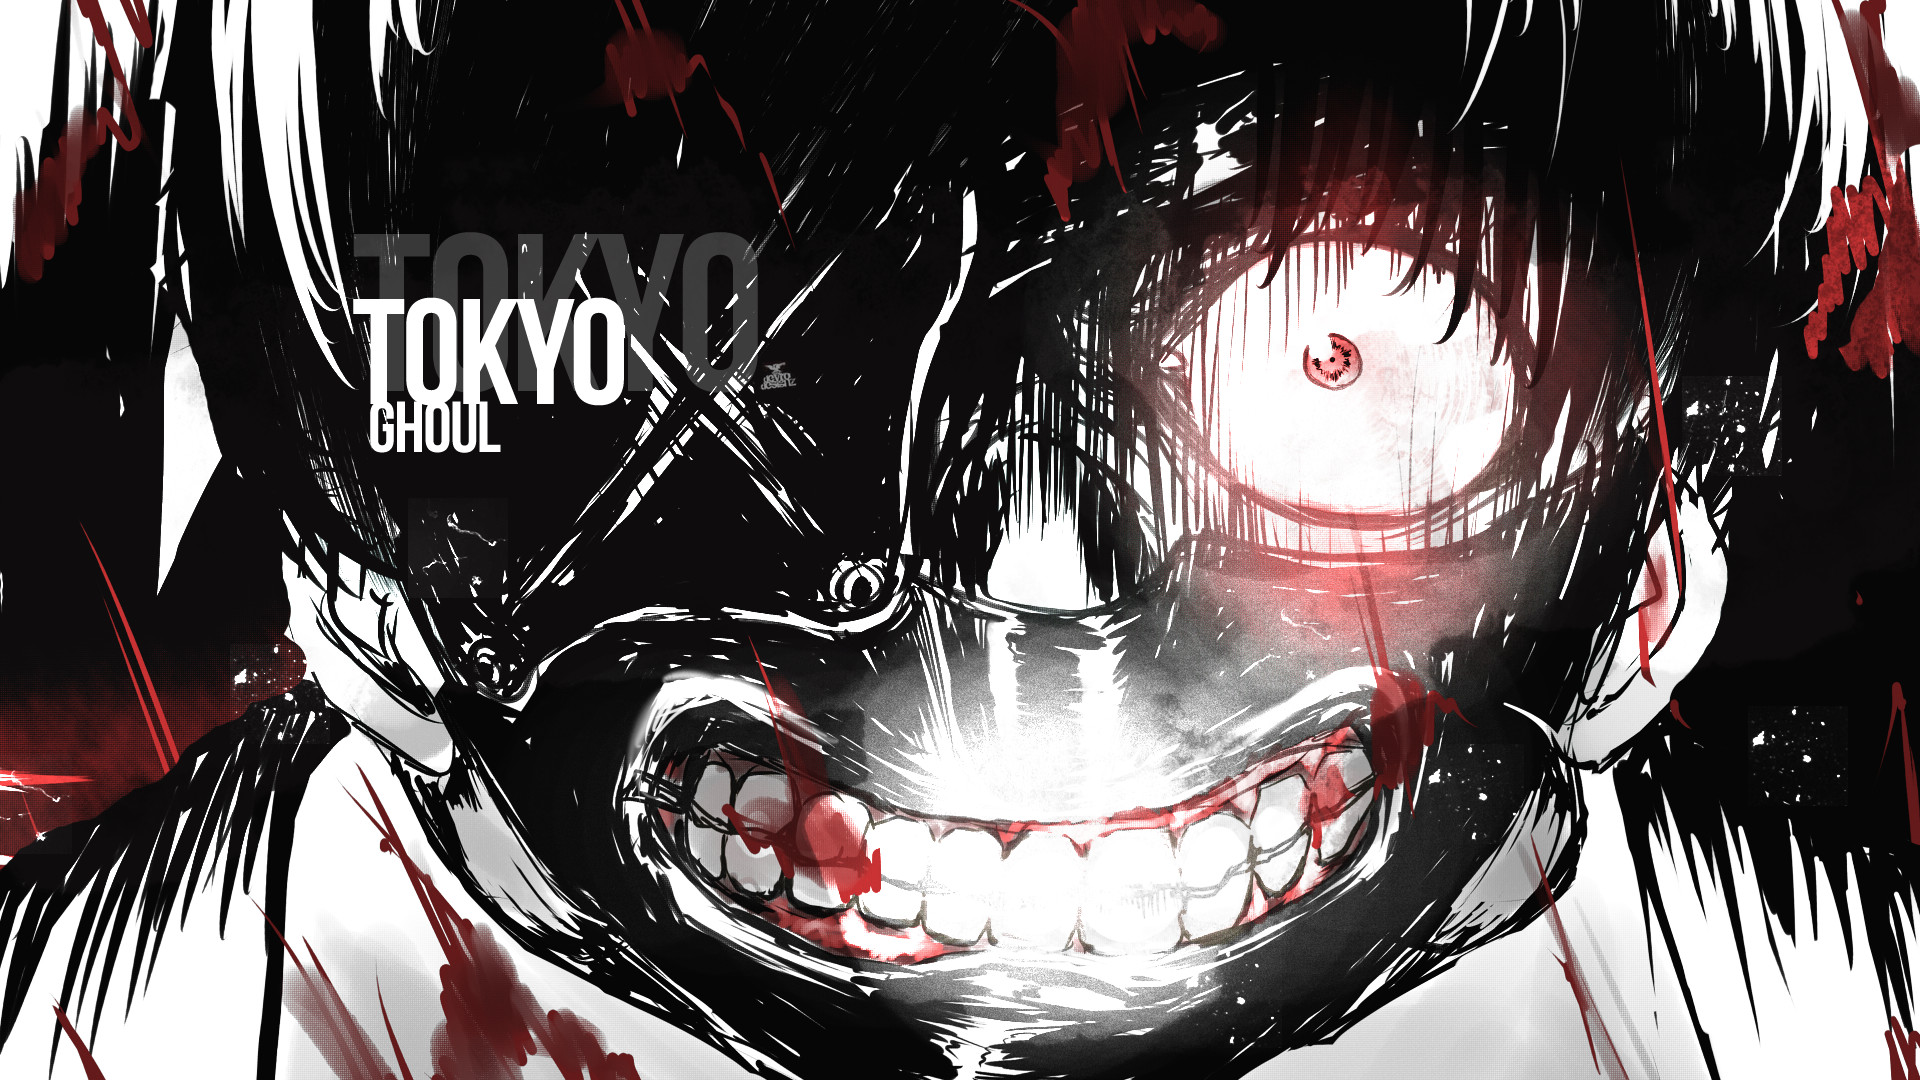 1920x1080 Tokyo Ghoul by Z0MB33 on DeviantArt